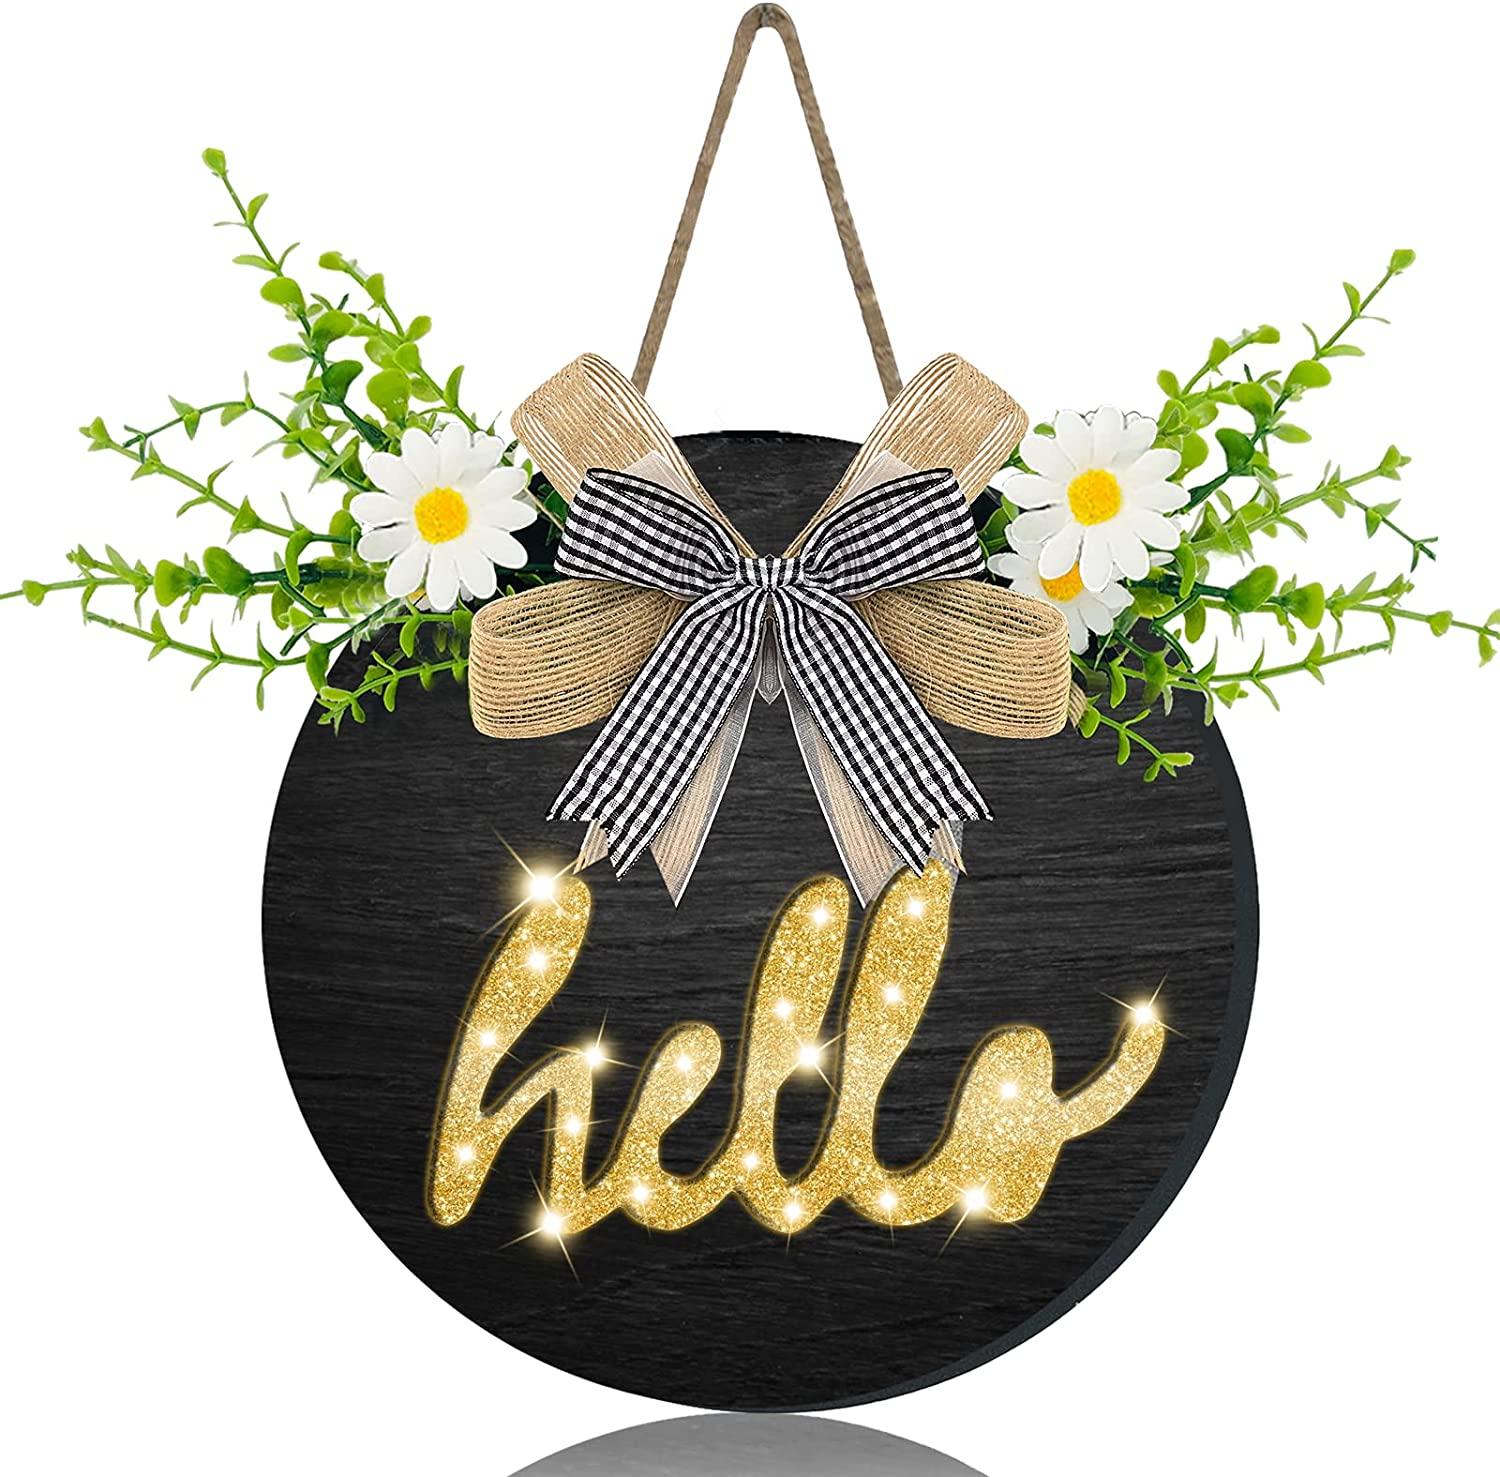 AMENON Welcome Hello Sign Porch for Front Door Decor, Pre-Lit Light Battery Operated with Timer Wooden Hello Wreath Farmhouse Sign Hanging Sign Spring Summer Home Wall Porch Decor(Black)